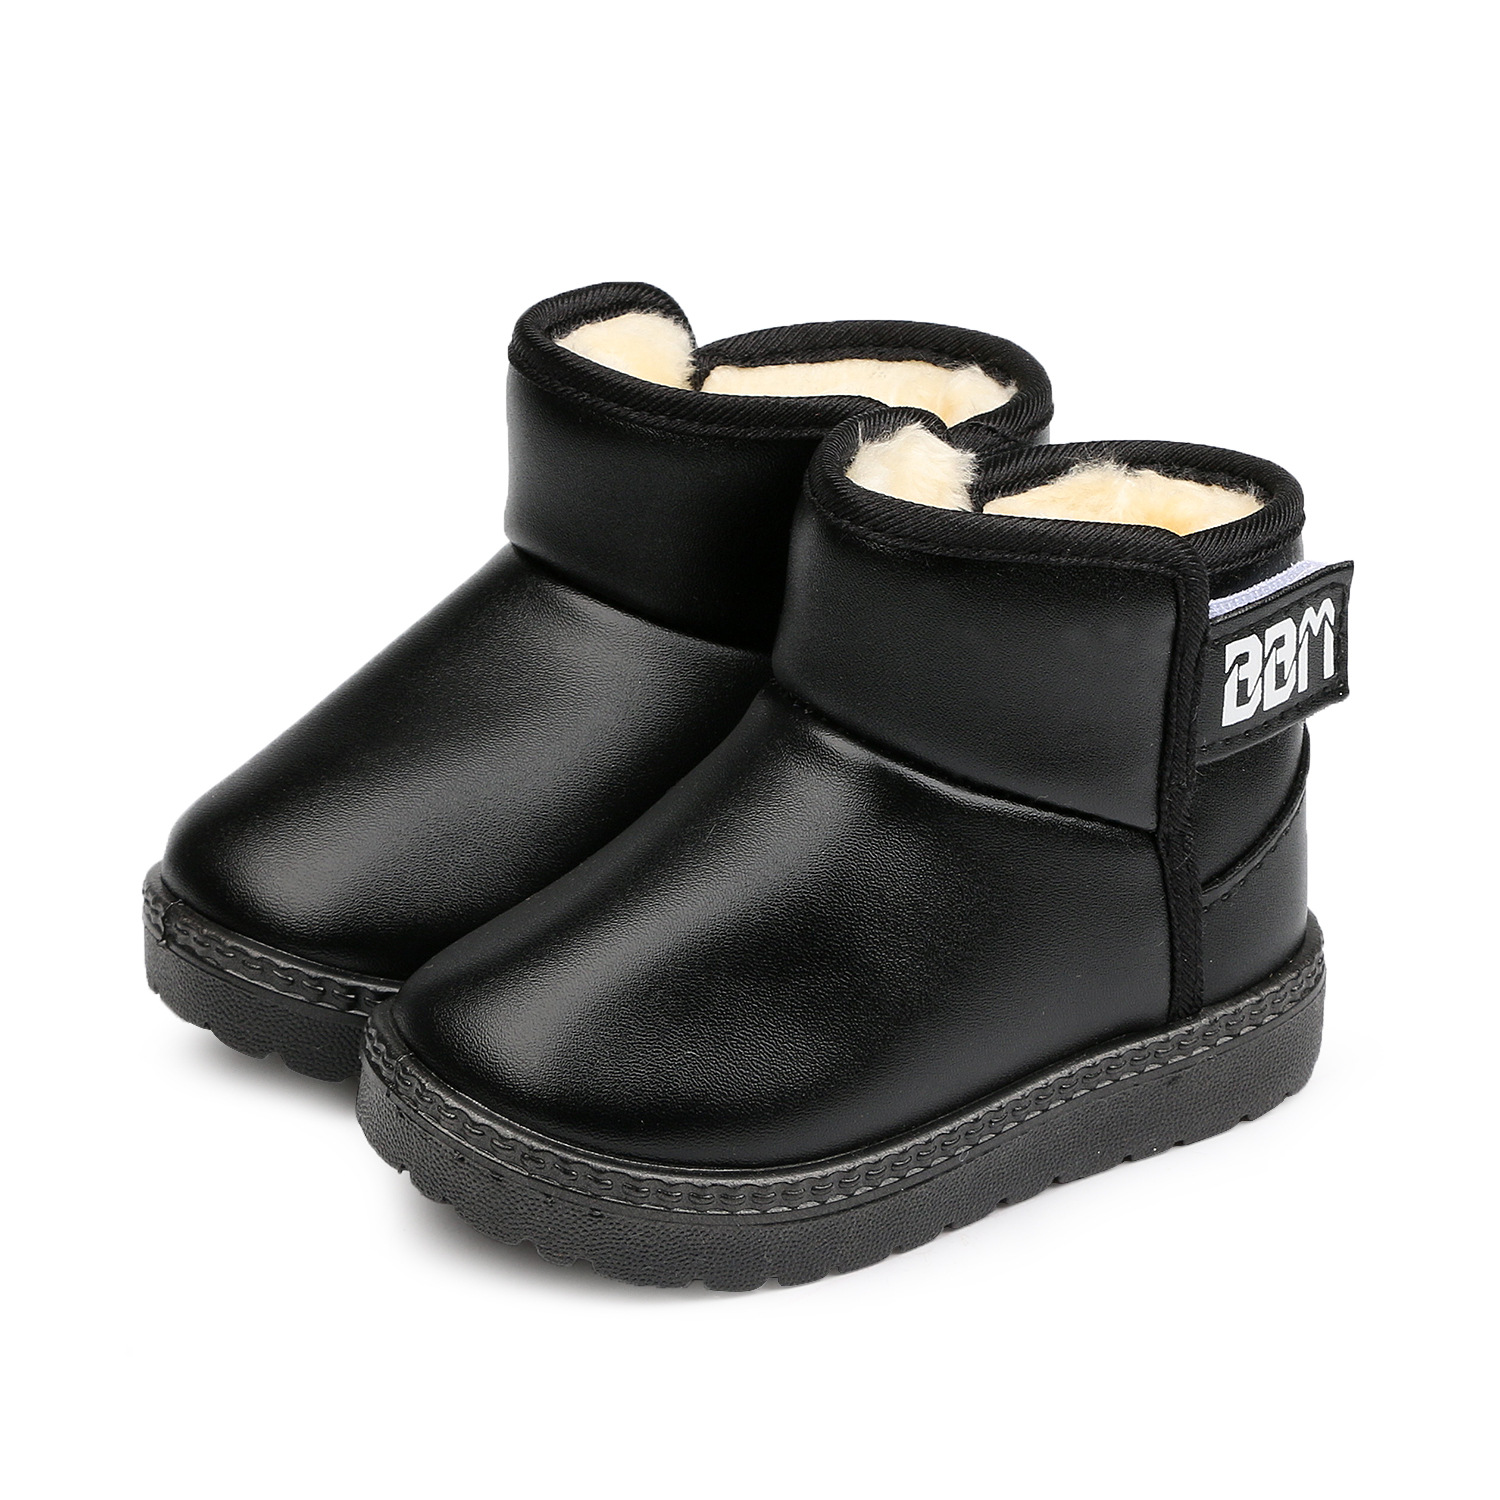 Basic Boots Shoes Masorini 2019 New Mens High-top Shoes Zipper Design With Flat Top Quality Mens Feet Wearing Mens Shoes Ww-767